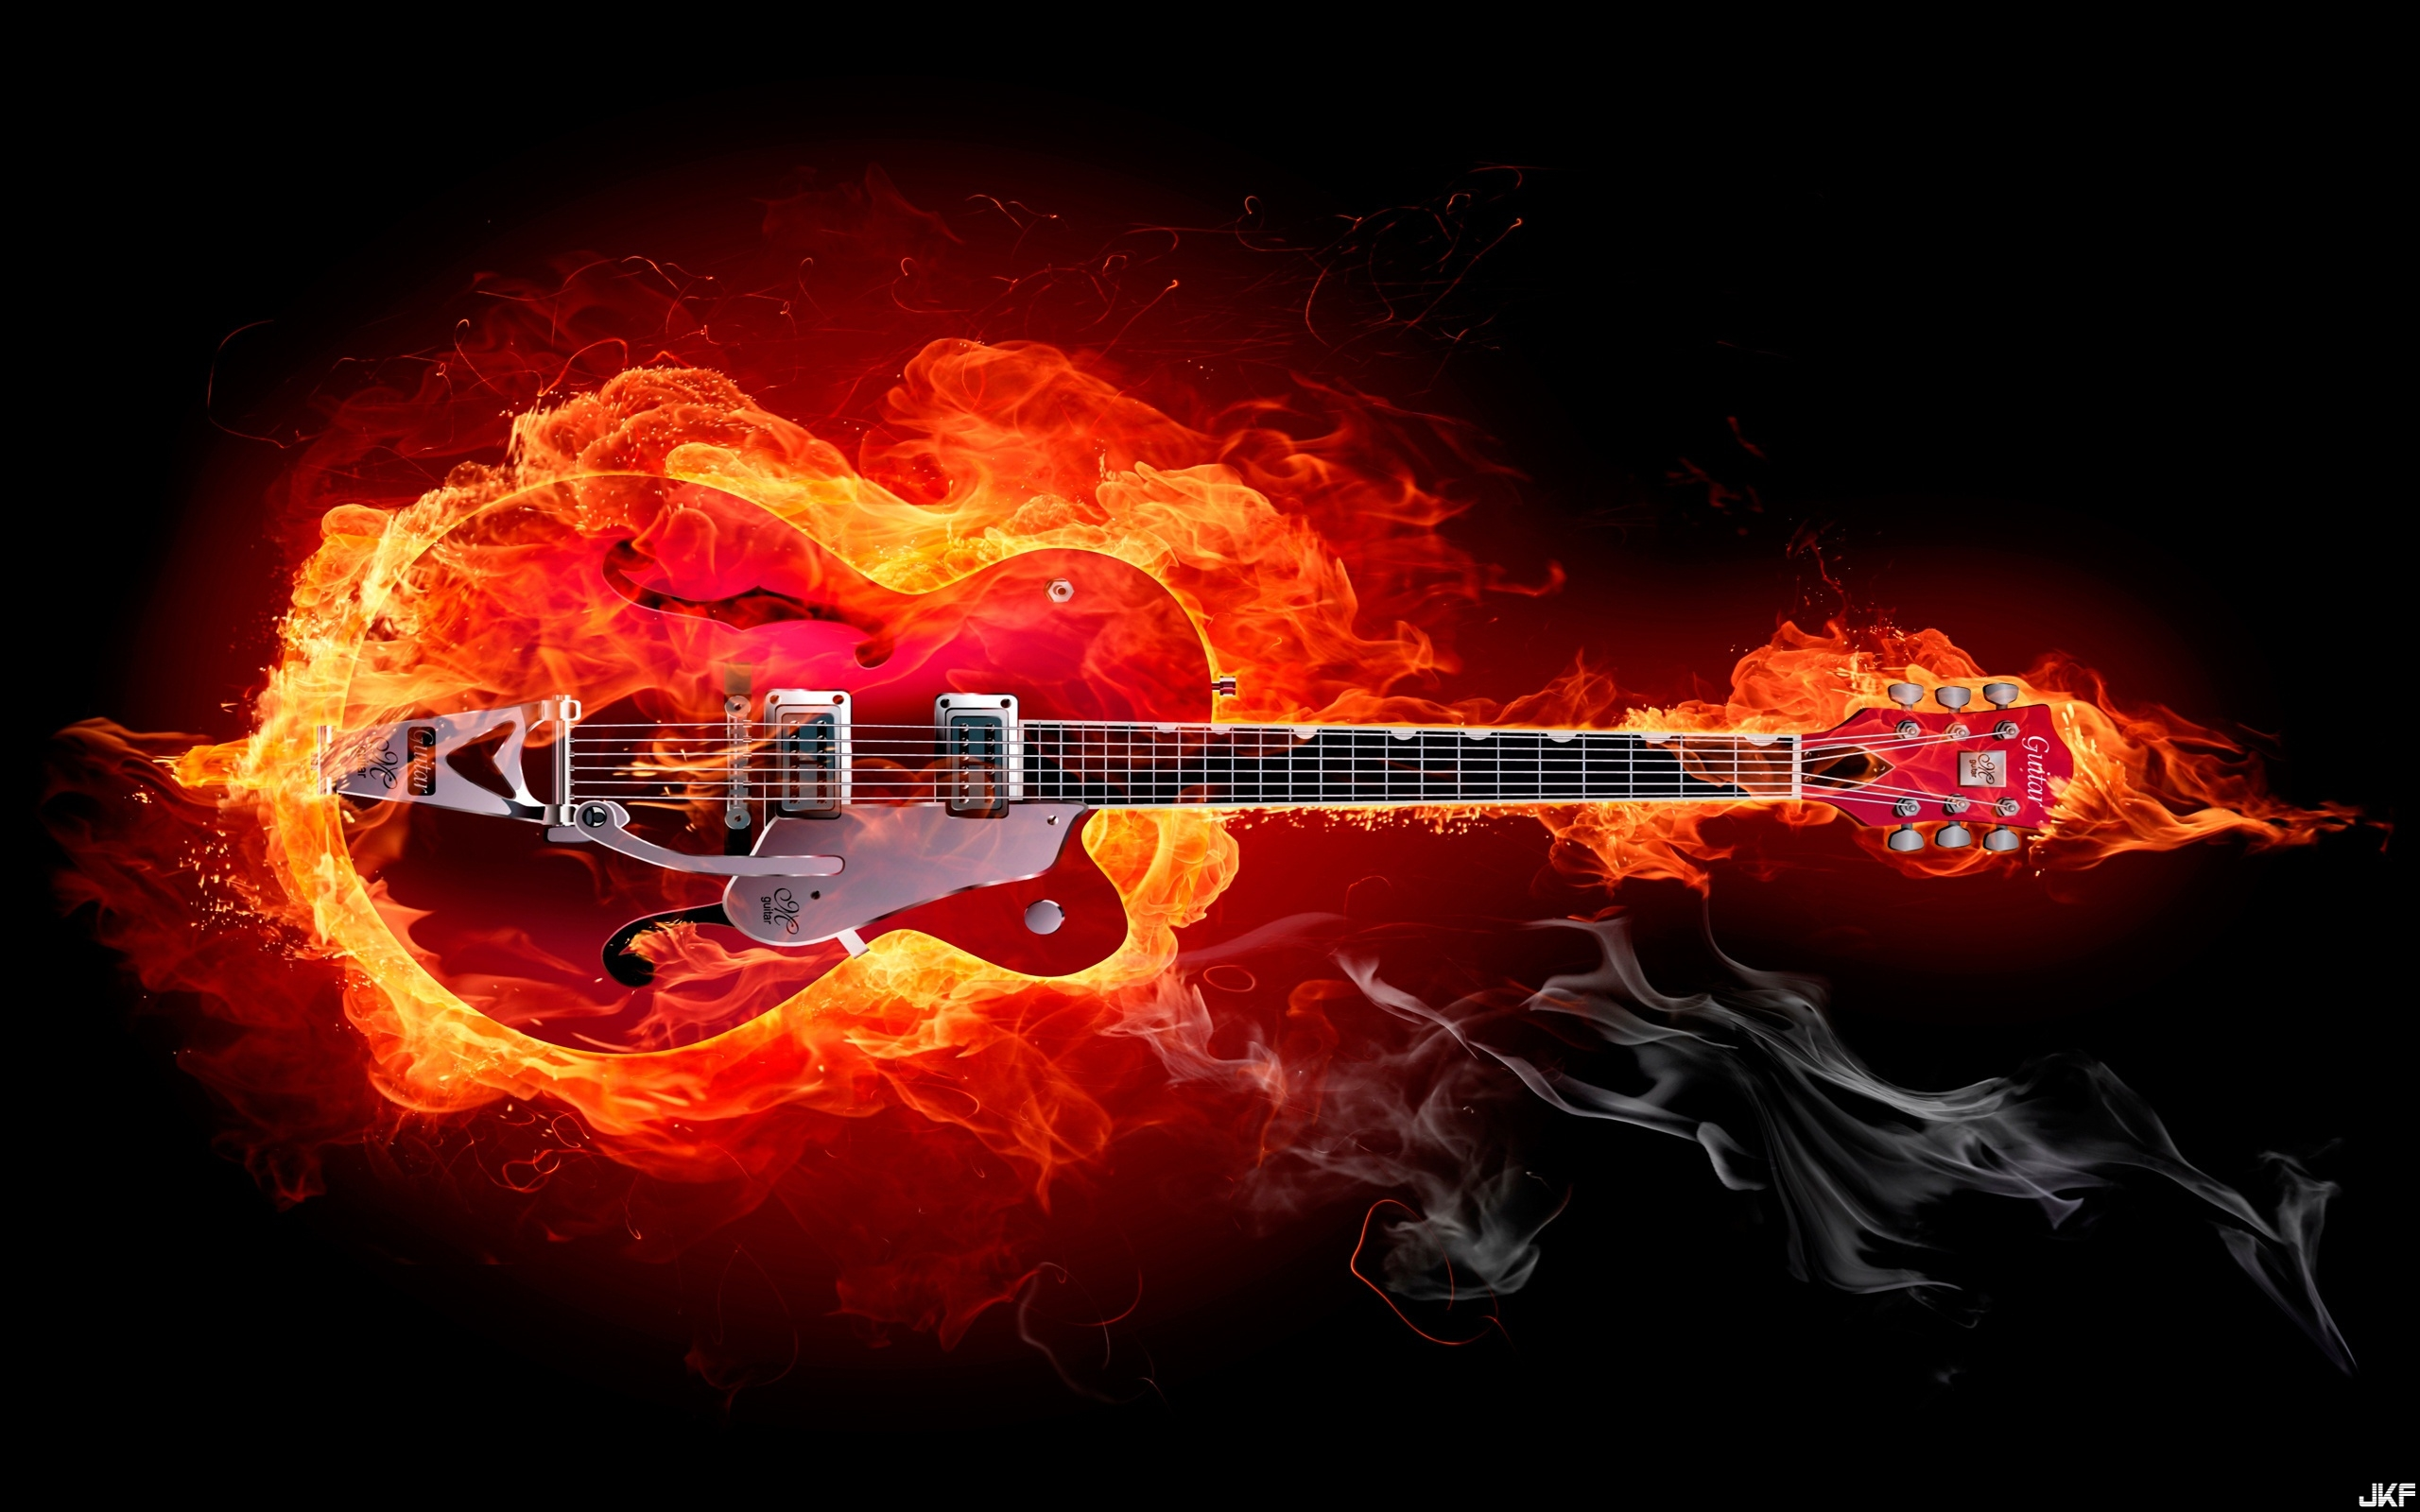 Fire-guitar-creative_2560x1600.jpg